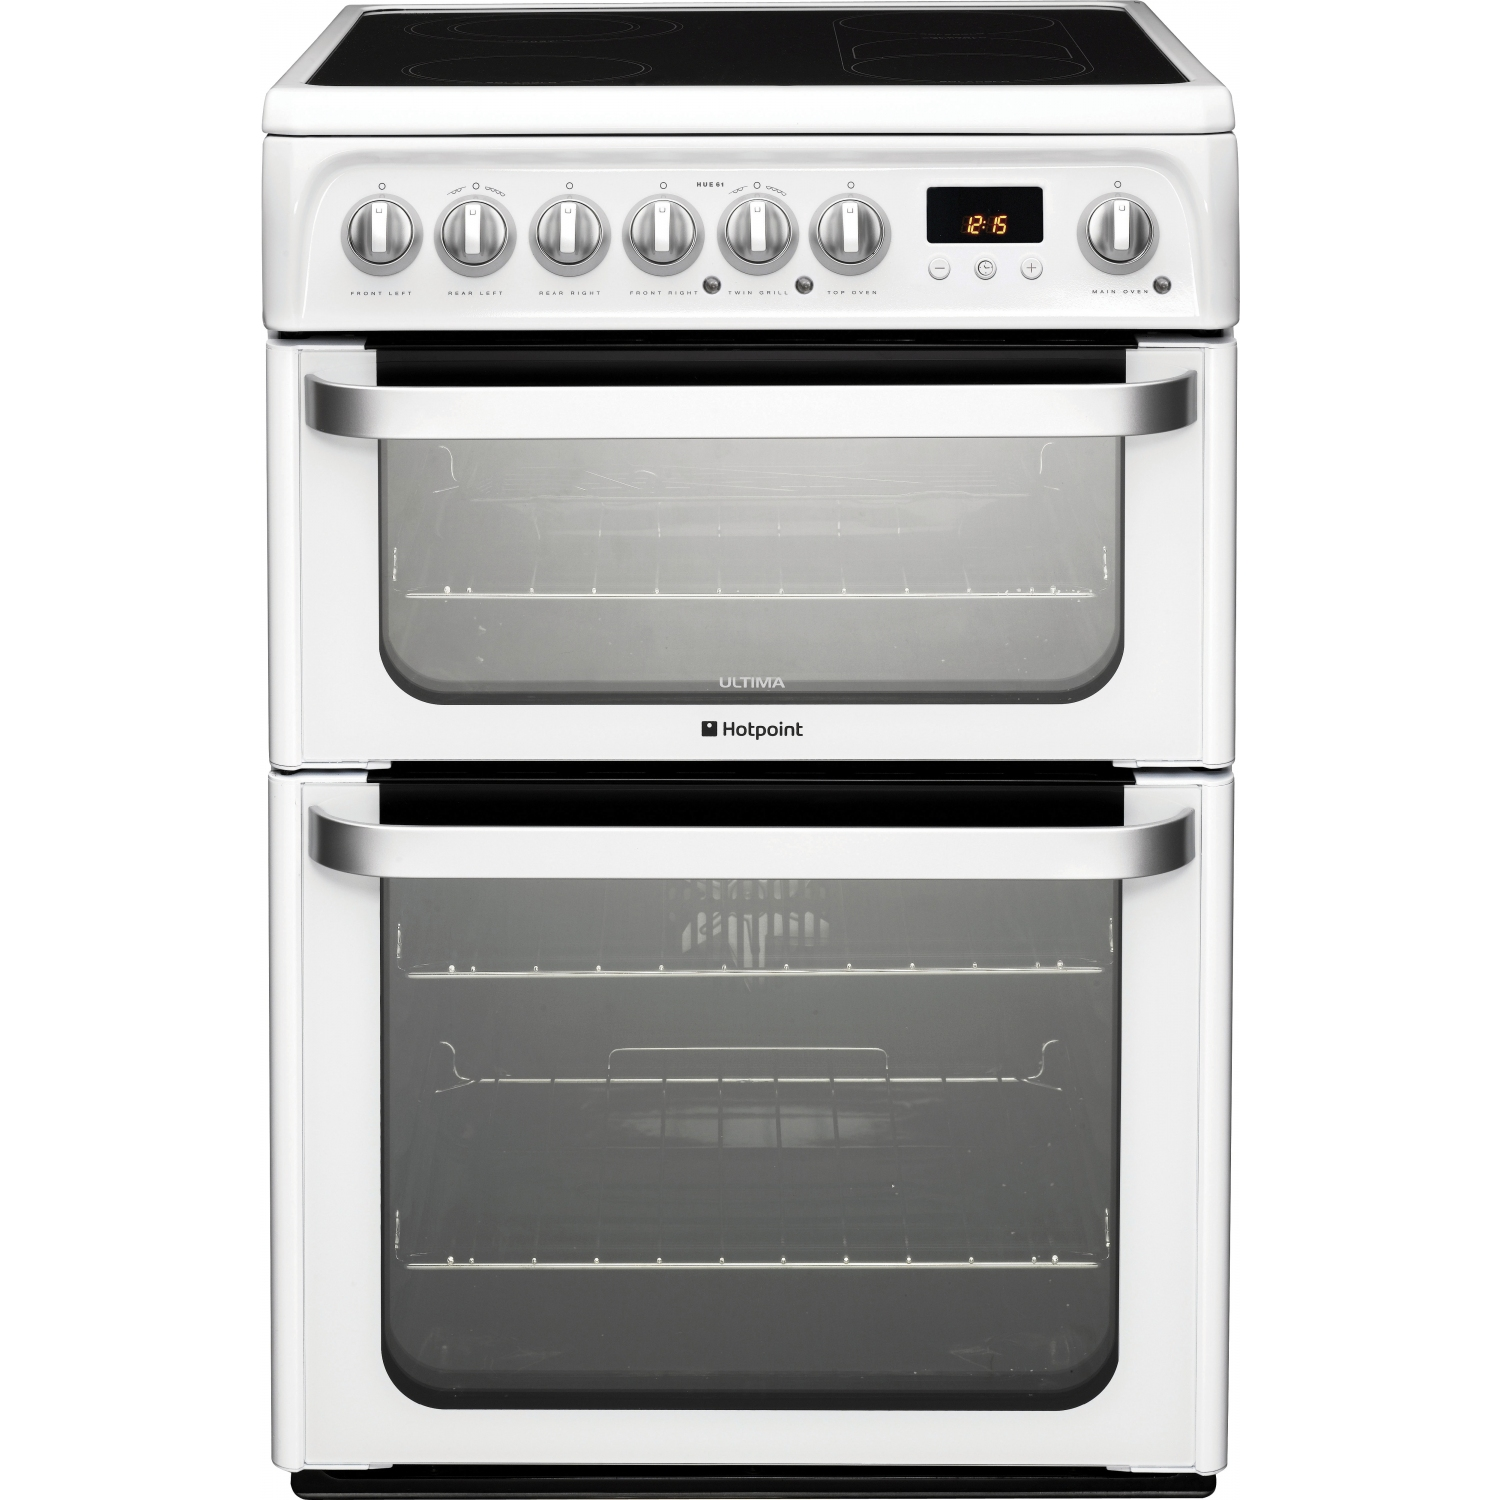 Hotpoint 60cm White Freestanding Electric Cooker - 0